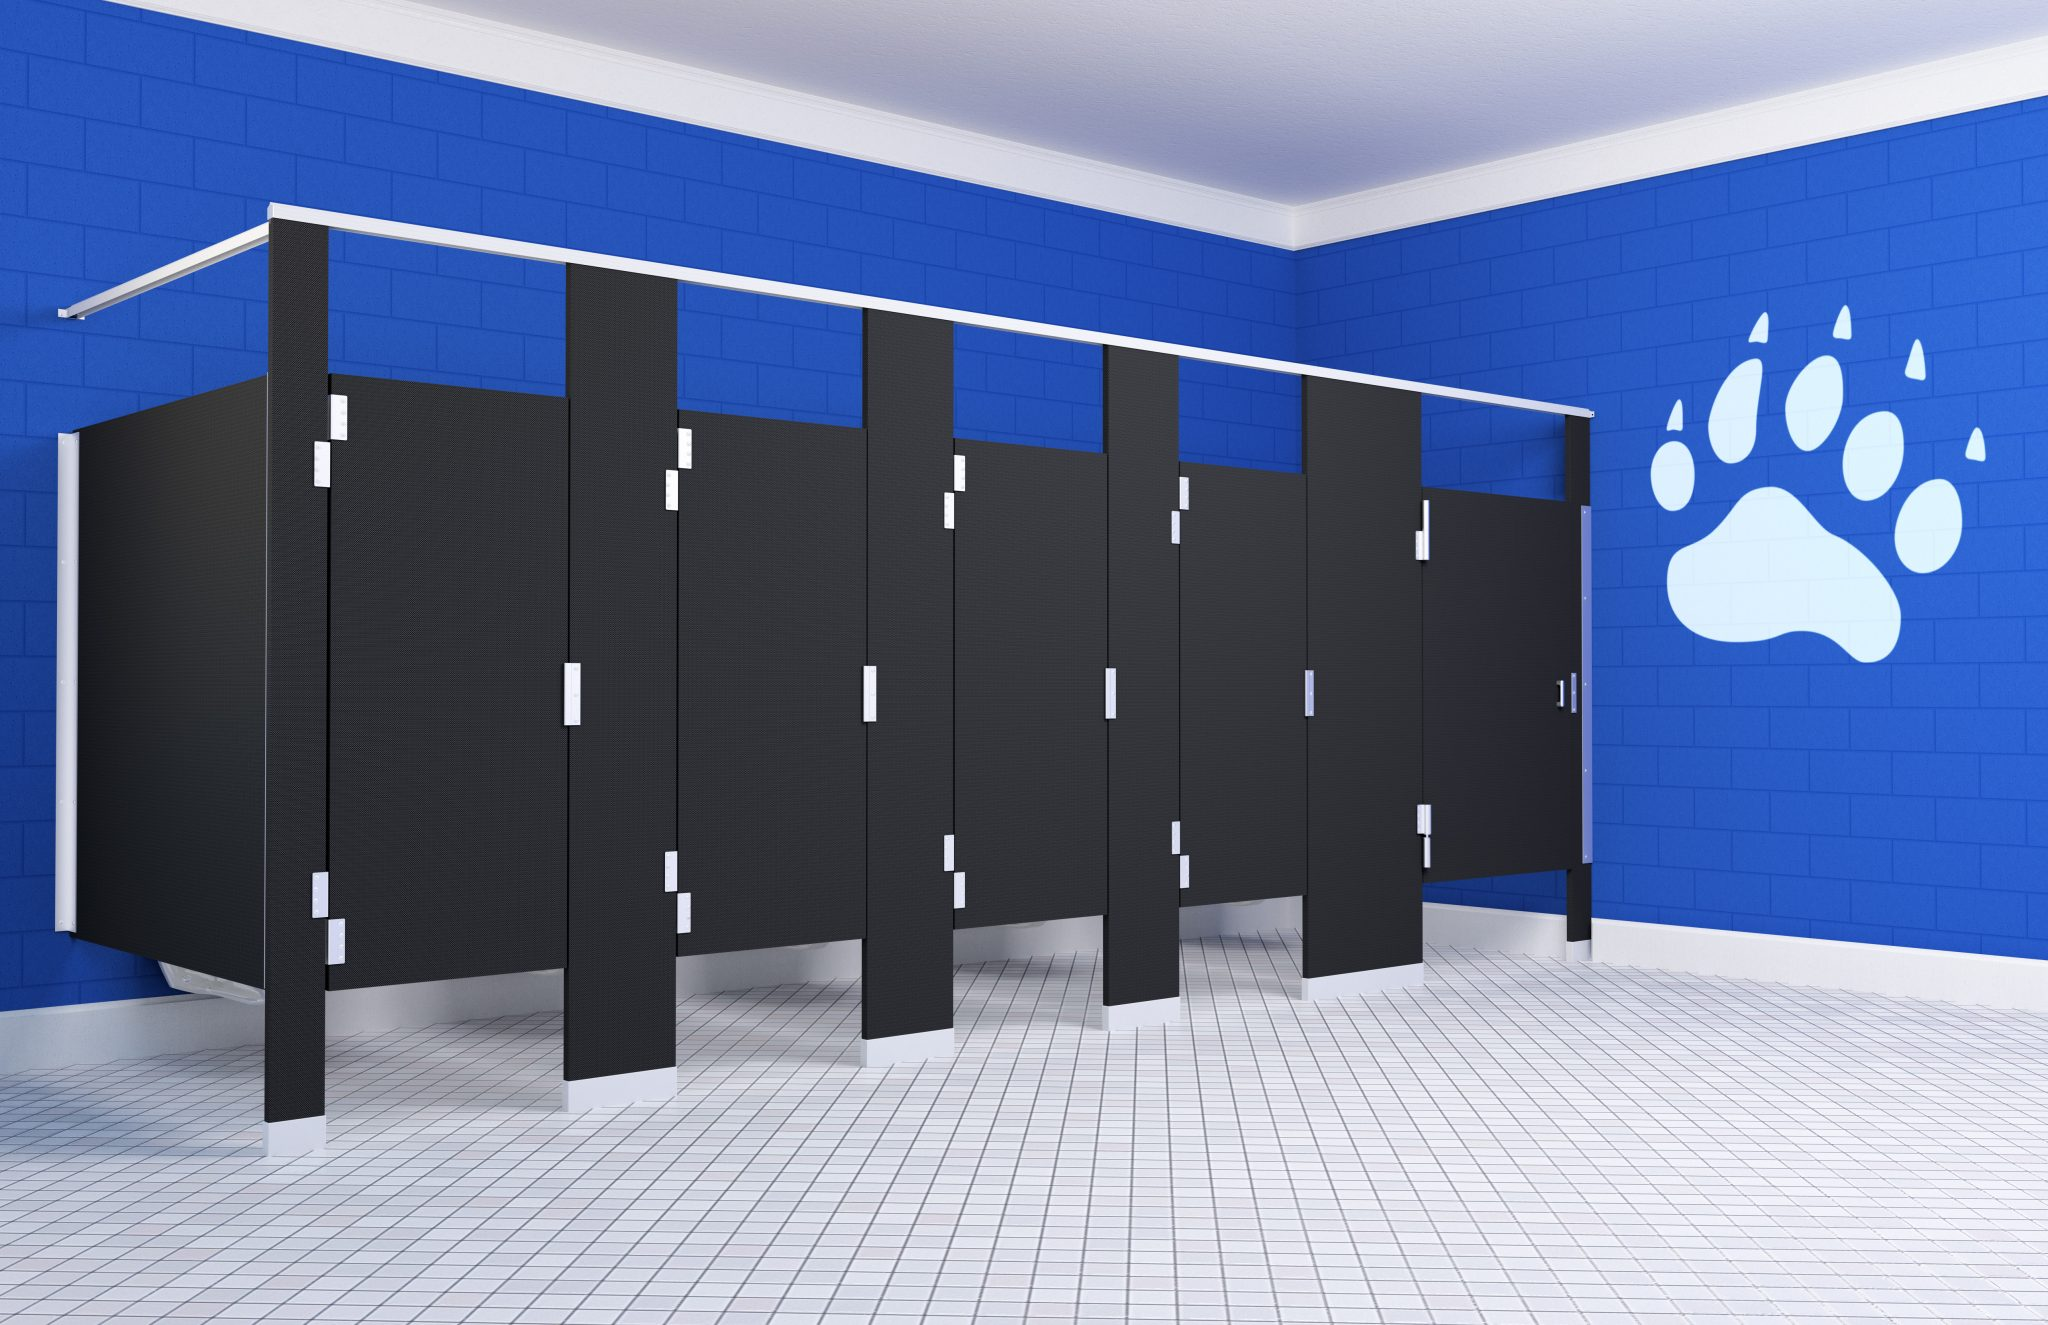 Black Hiny Hiders Partitions Next To Blue Wall